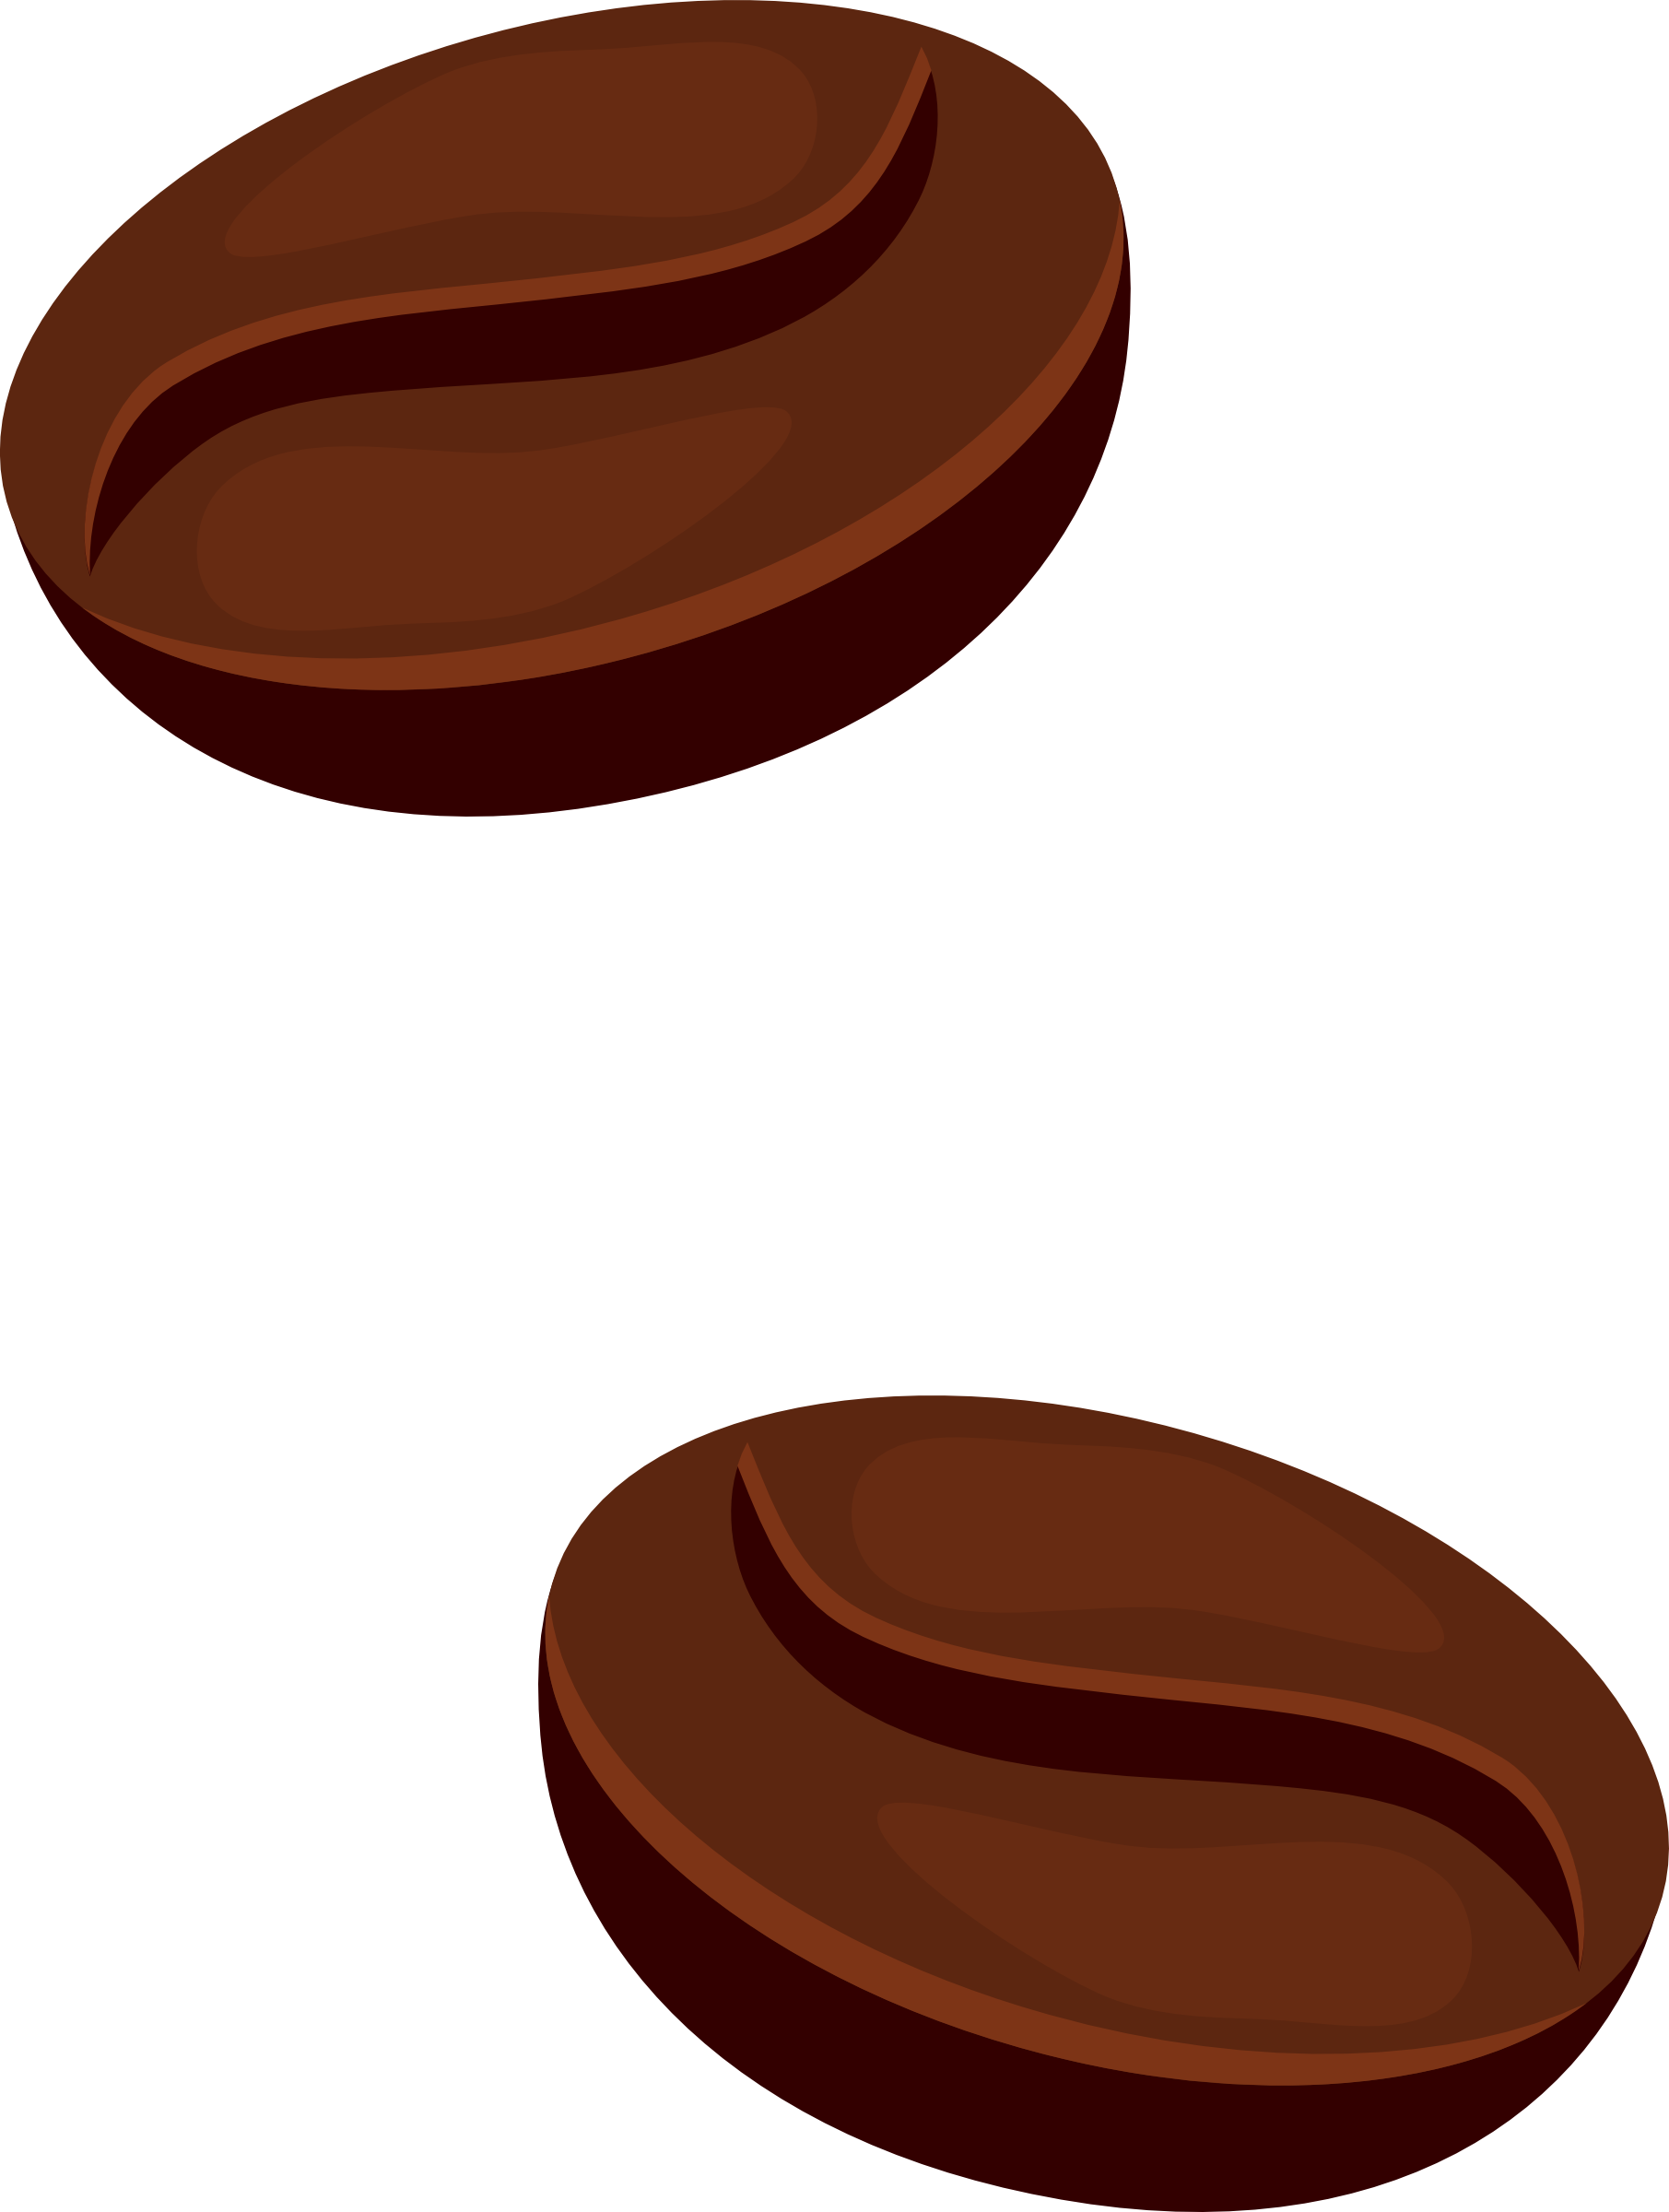 Free Coffee Bean Cliparts, Download Free Clip Art, Free Clip Art on Clipart  Library